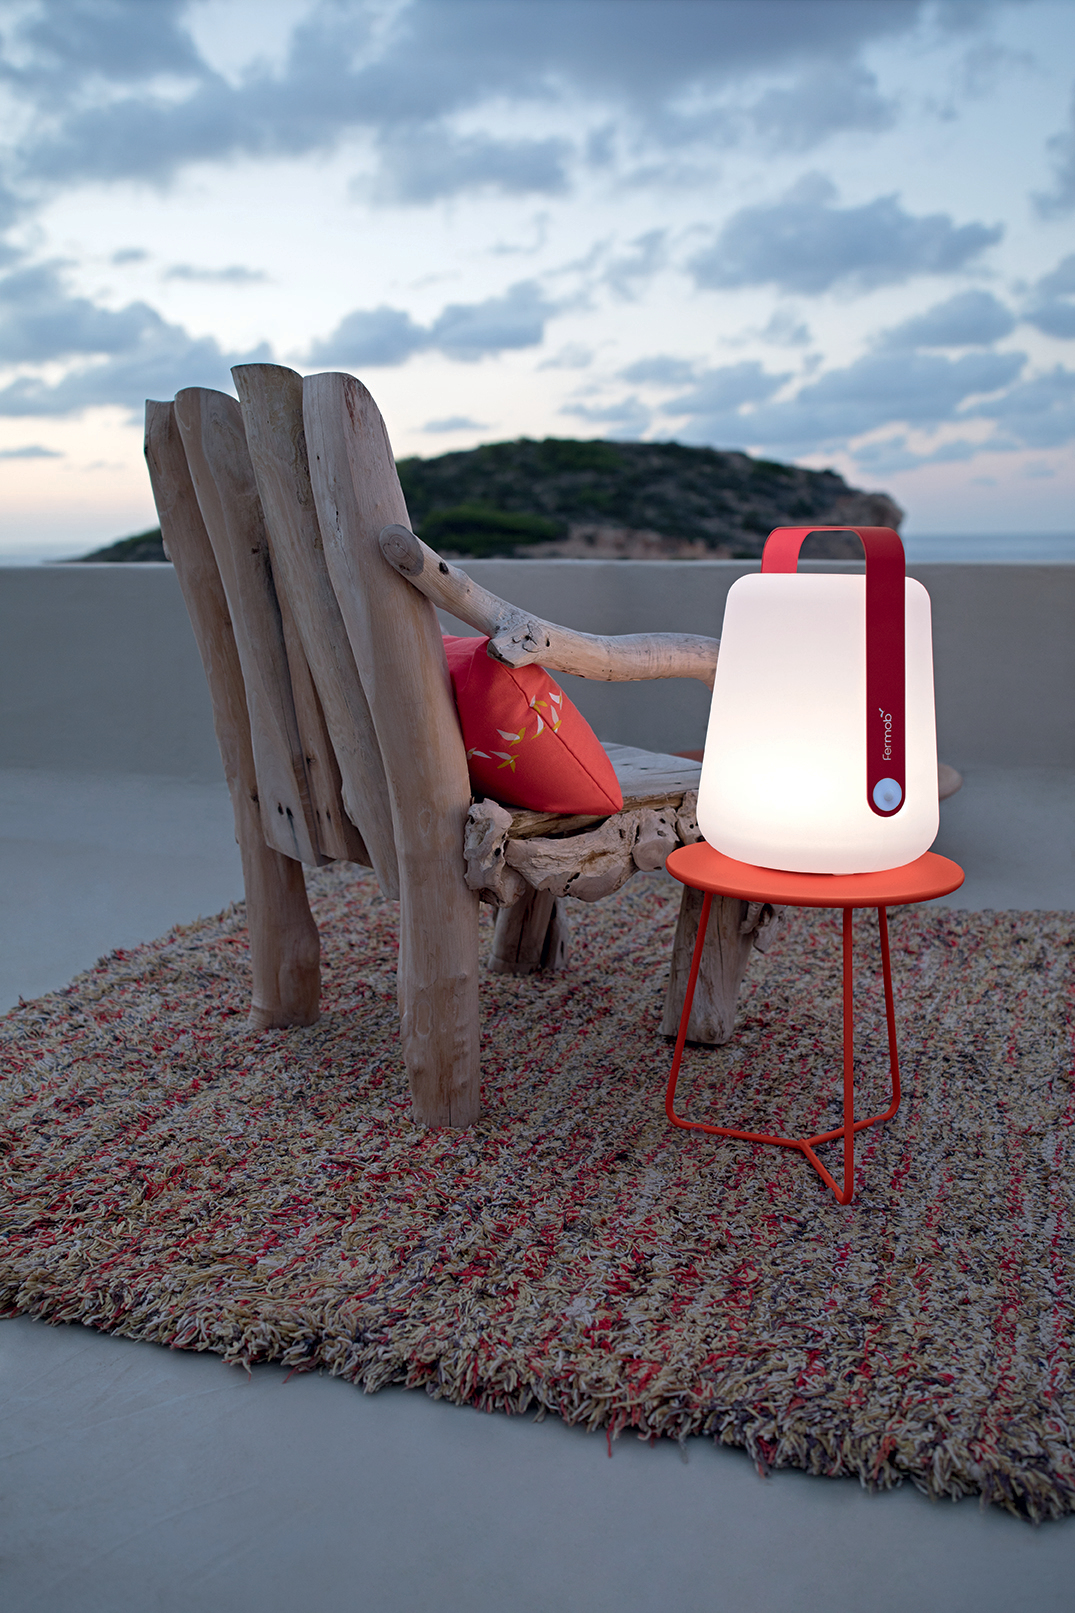 Fermod lamp and chair on the beach